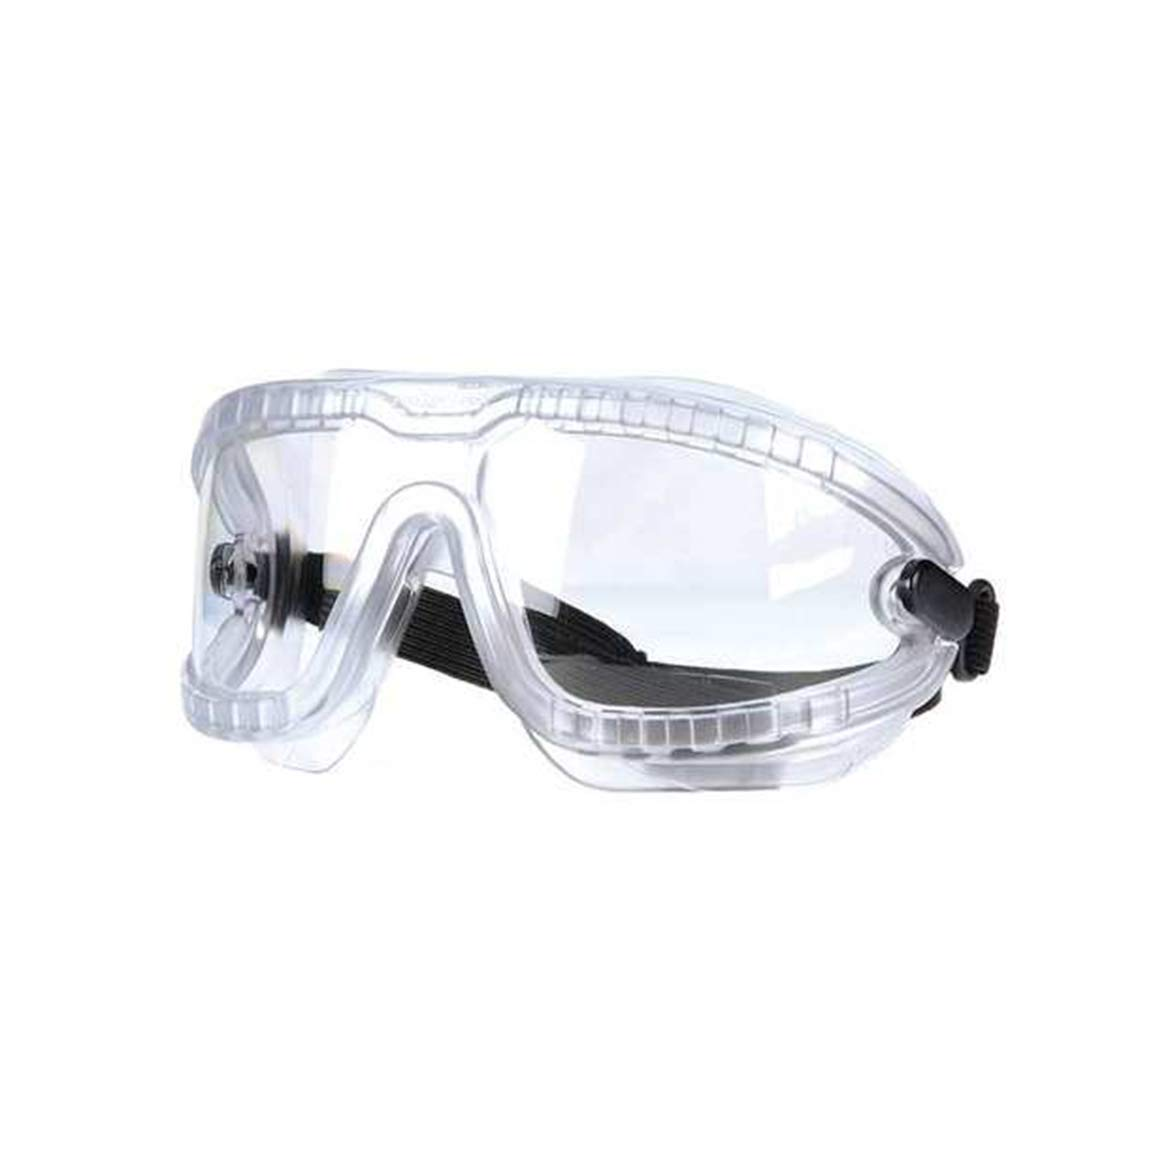 3x Clear Safety Full Face Shield Visor Goggles Splash-proof Eye Protection